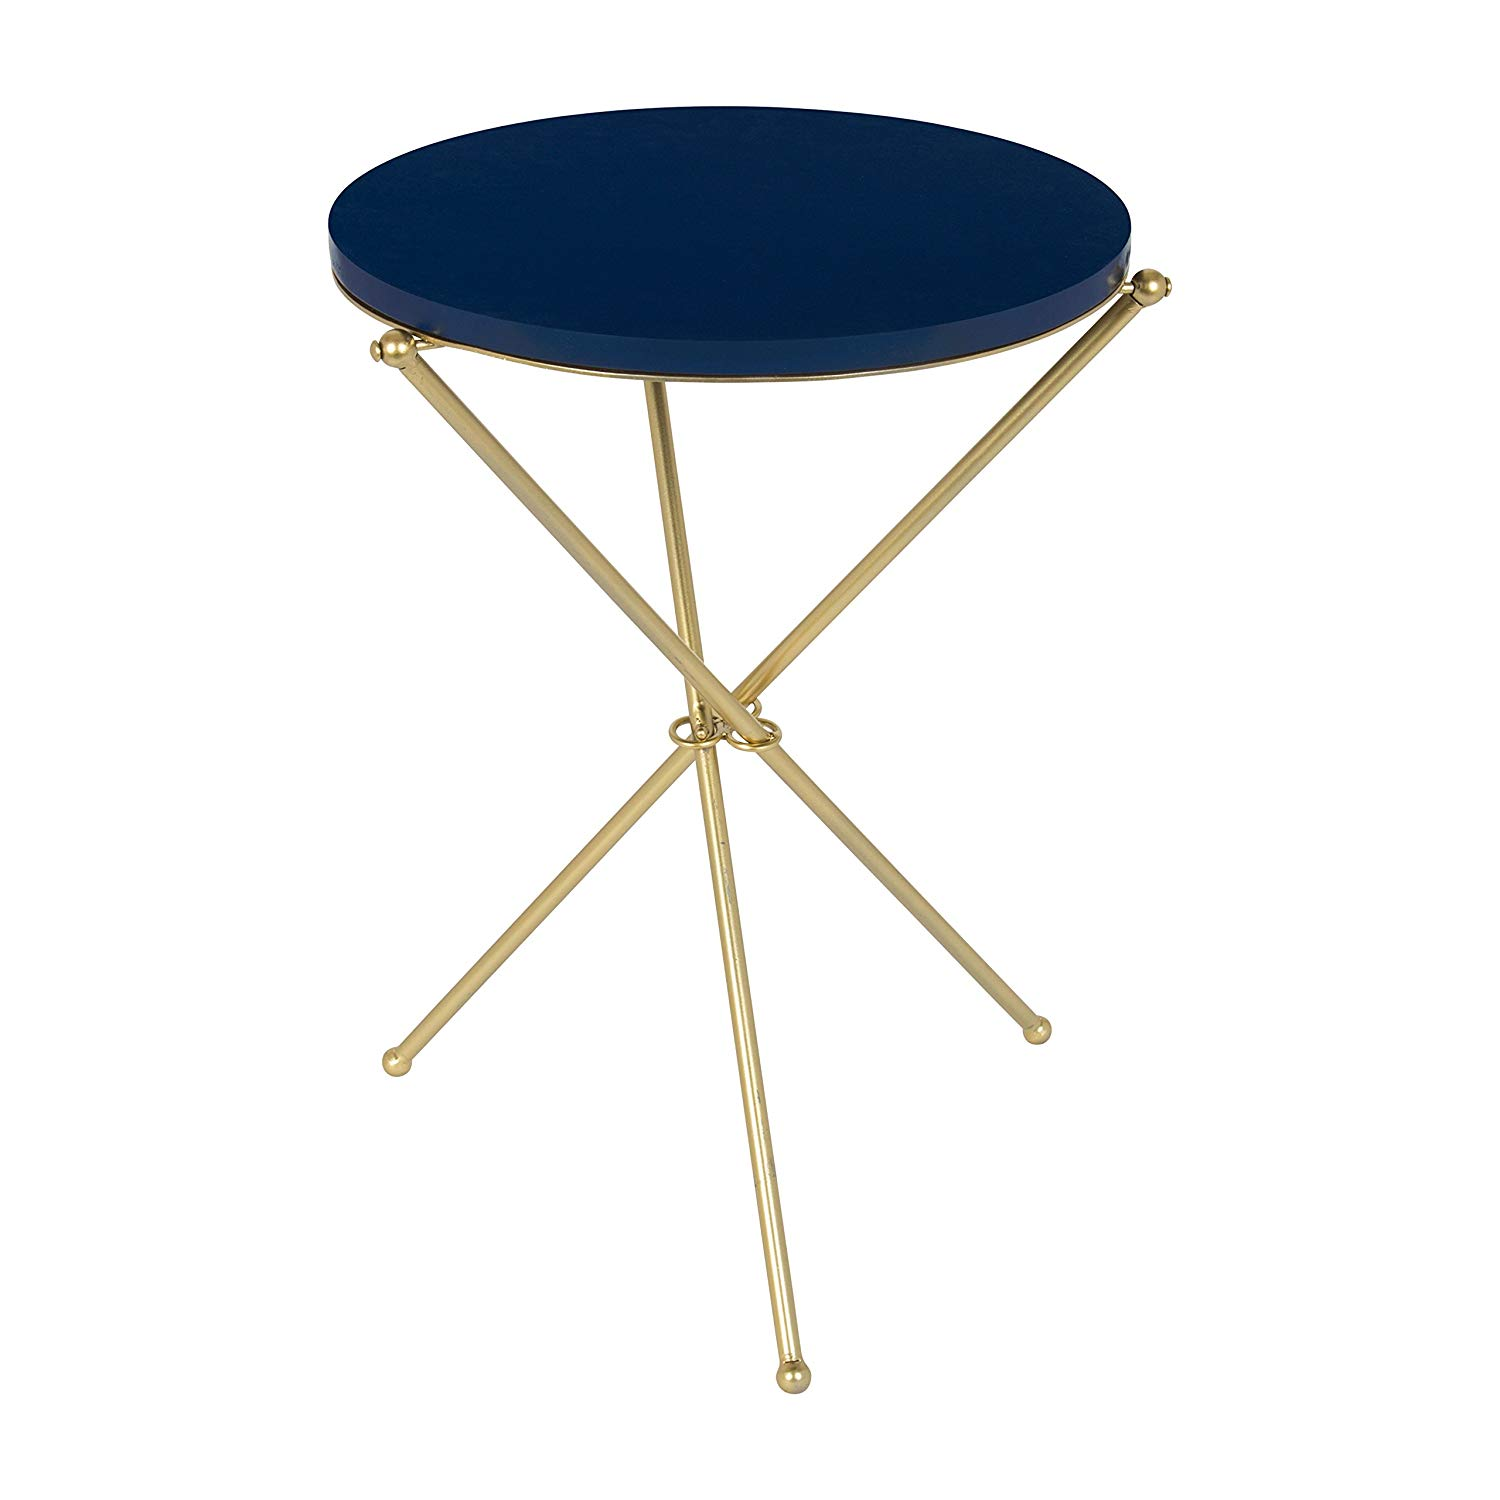 kate and laurel emellyn modern luxe folding side accent metal table with round painted wooden top tripod legs navy blue gold inch diameter rocking chair small white two tier end